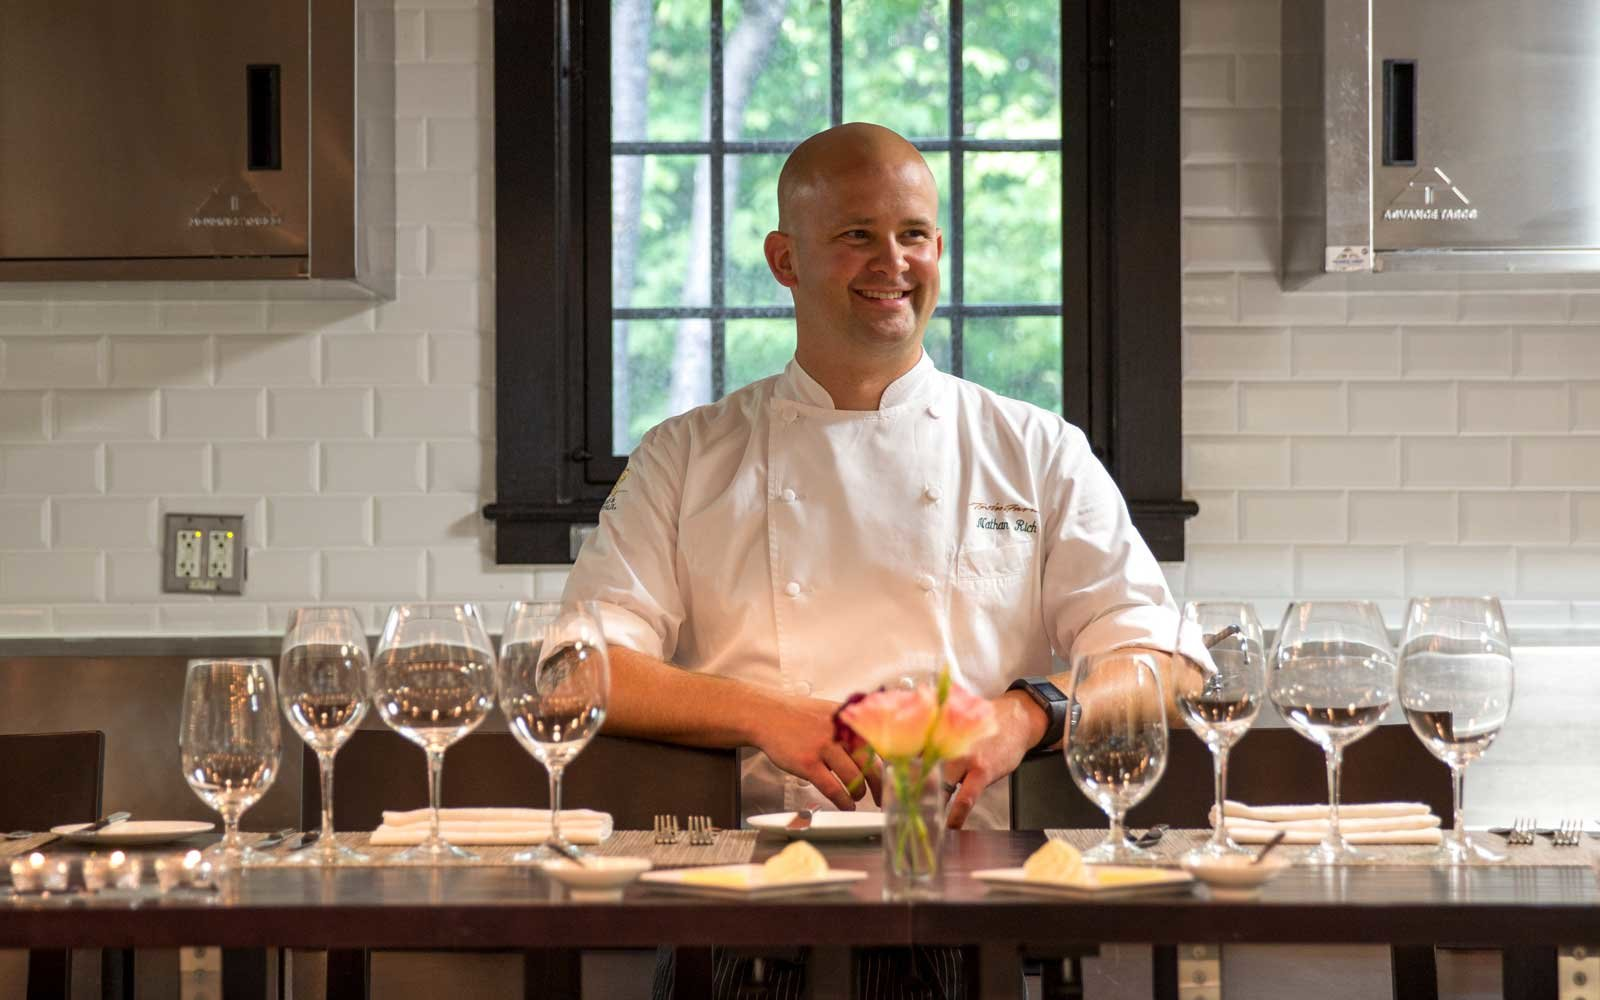 Chef Nathan Rich at Twin Farms Resort in Barnard, Vermont